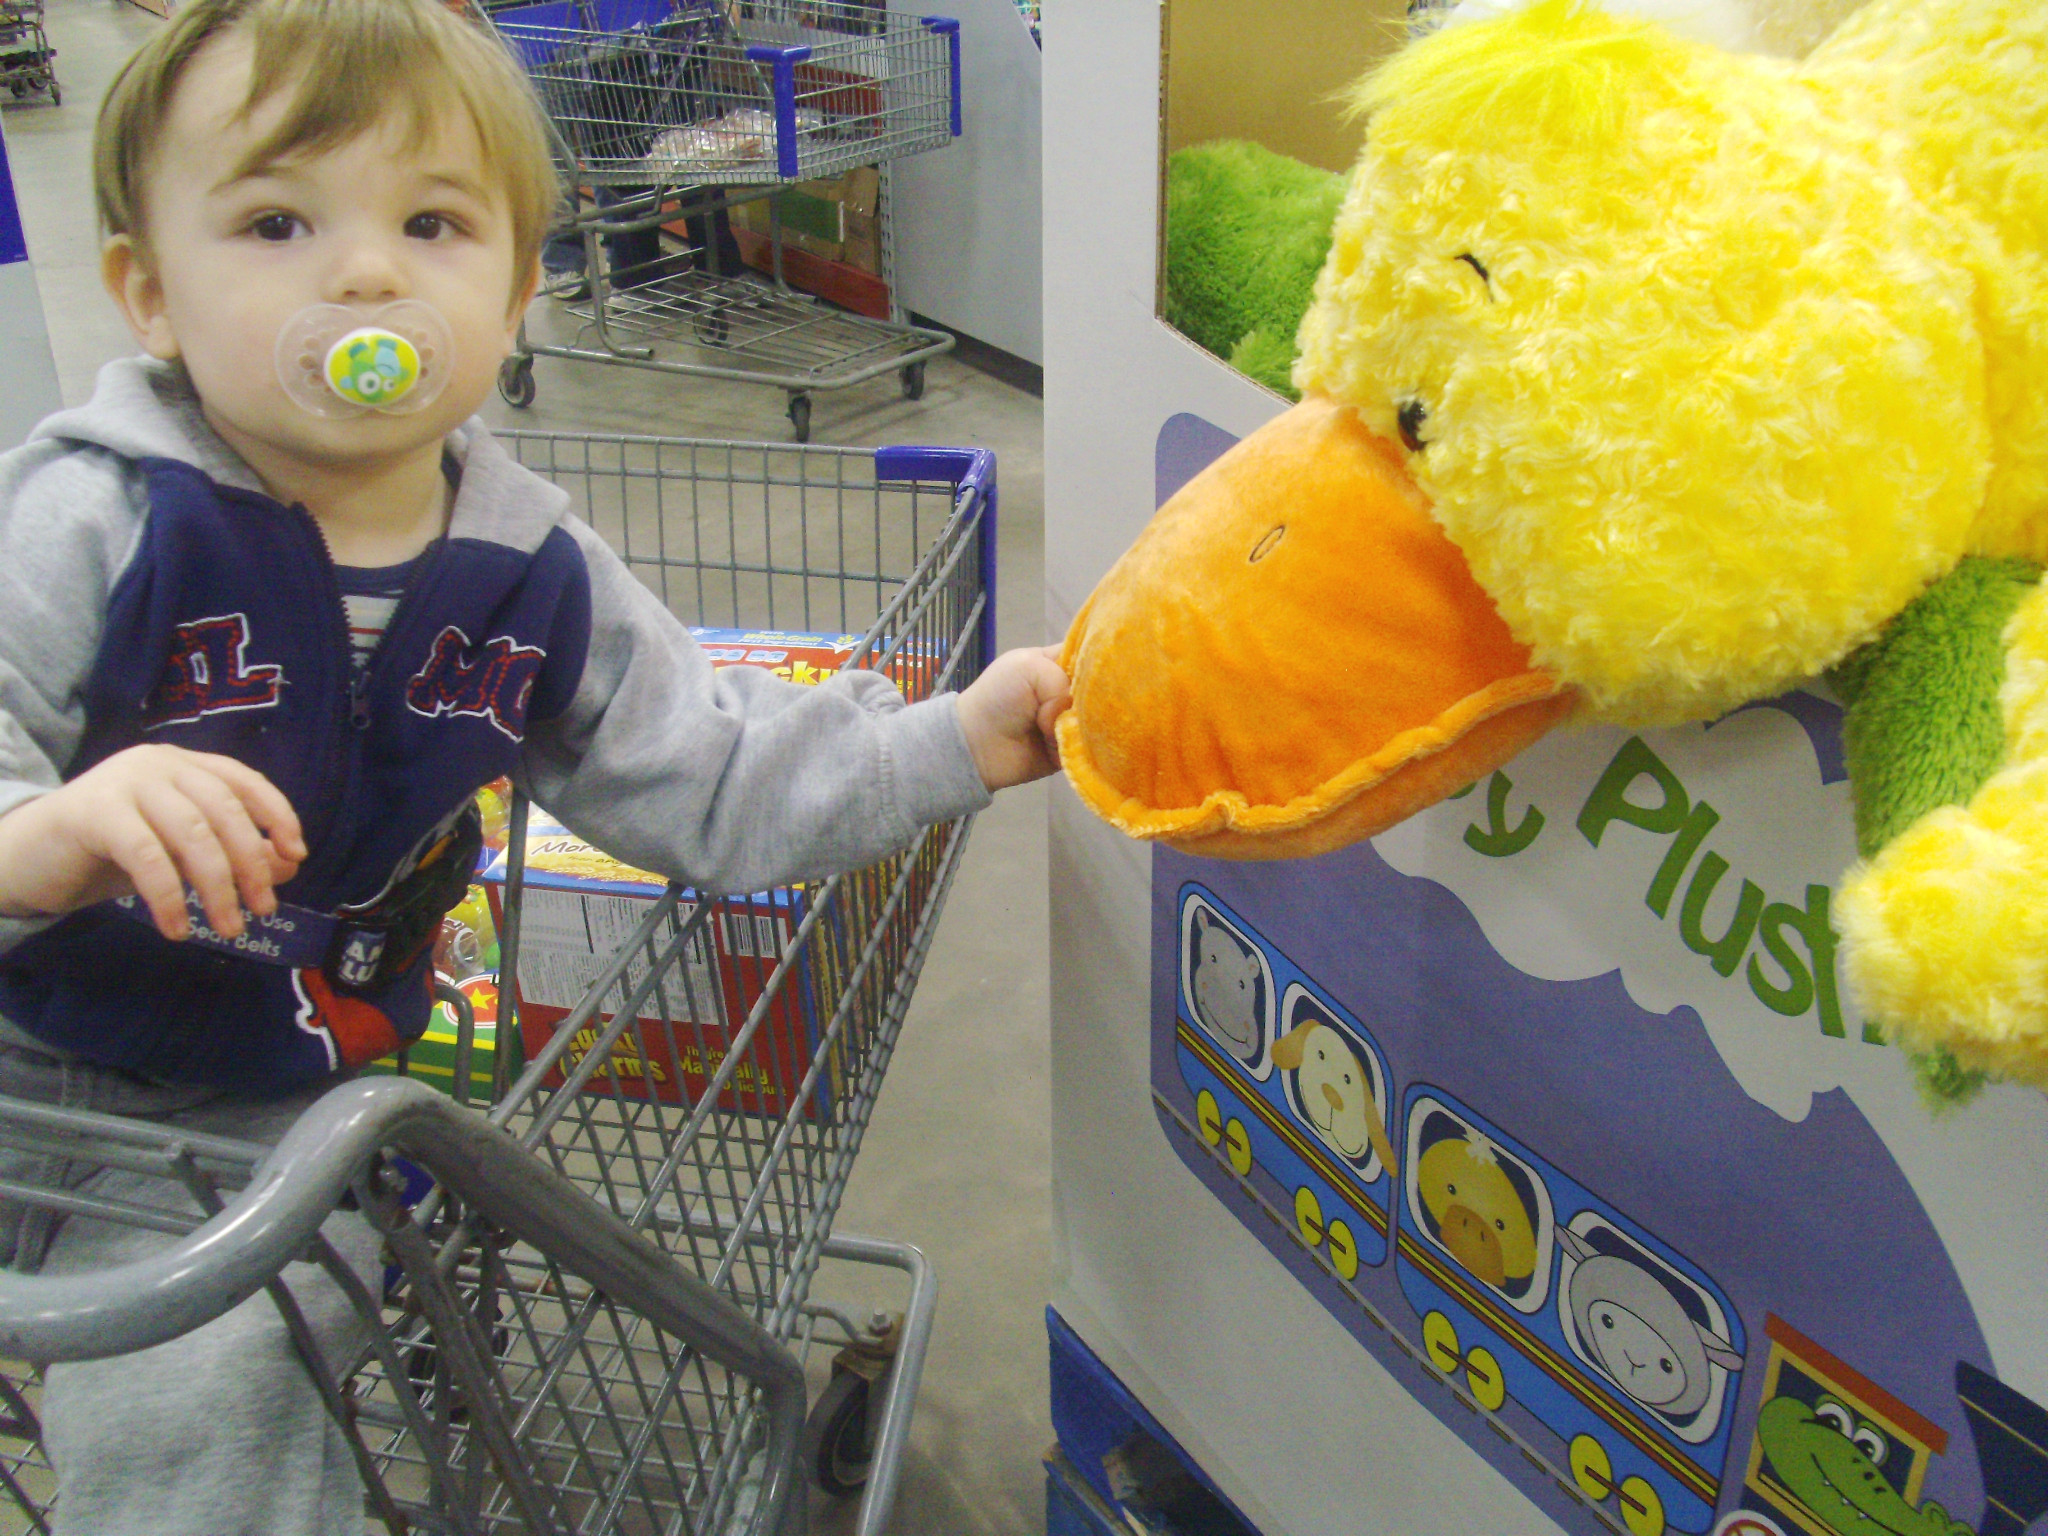 Photo: Here's his fun find at the store! He LOVES duckies!! This is a huge duck pillow that they had for Easter. I didn't get it because it was $19.99 (not bad, but I had other things to get so I couldn't spend an extra $20!) He had fun hugging and playing with the ducky for a few minutes though!